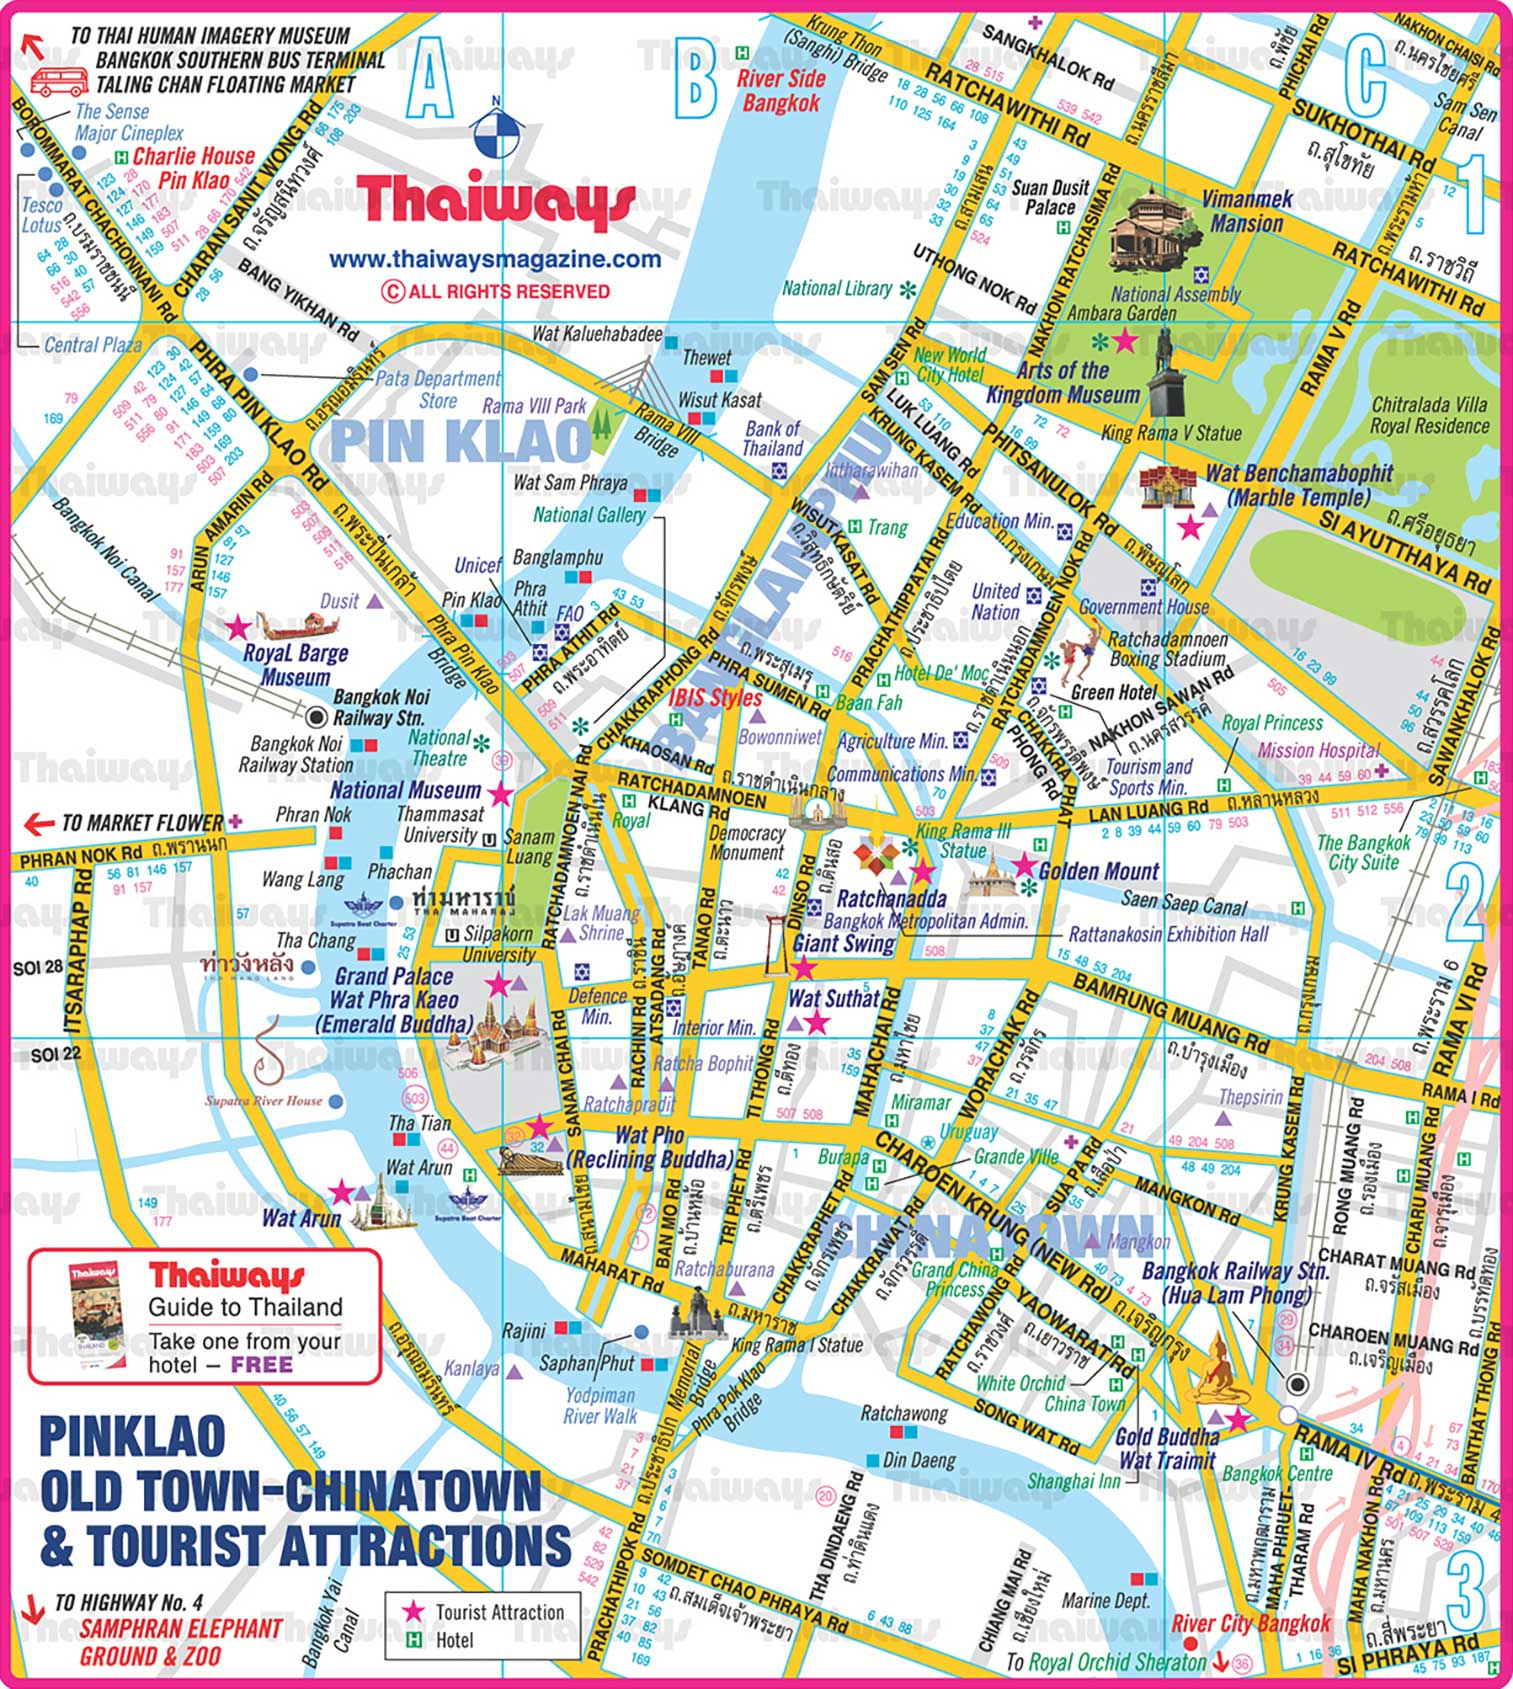 Pinklao-Old Town-Chinatown-Tourist Attractions-Map